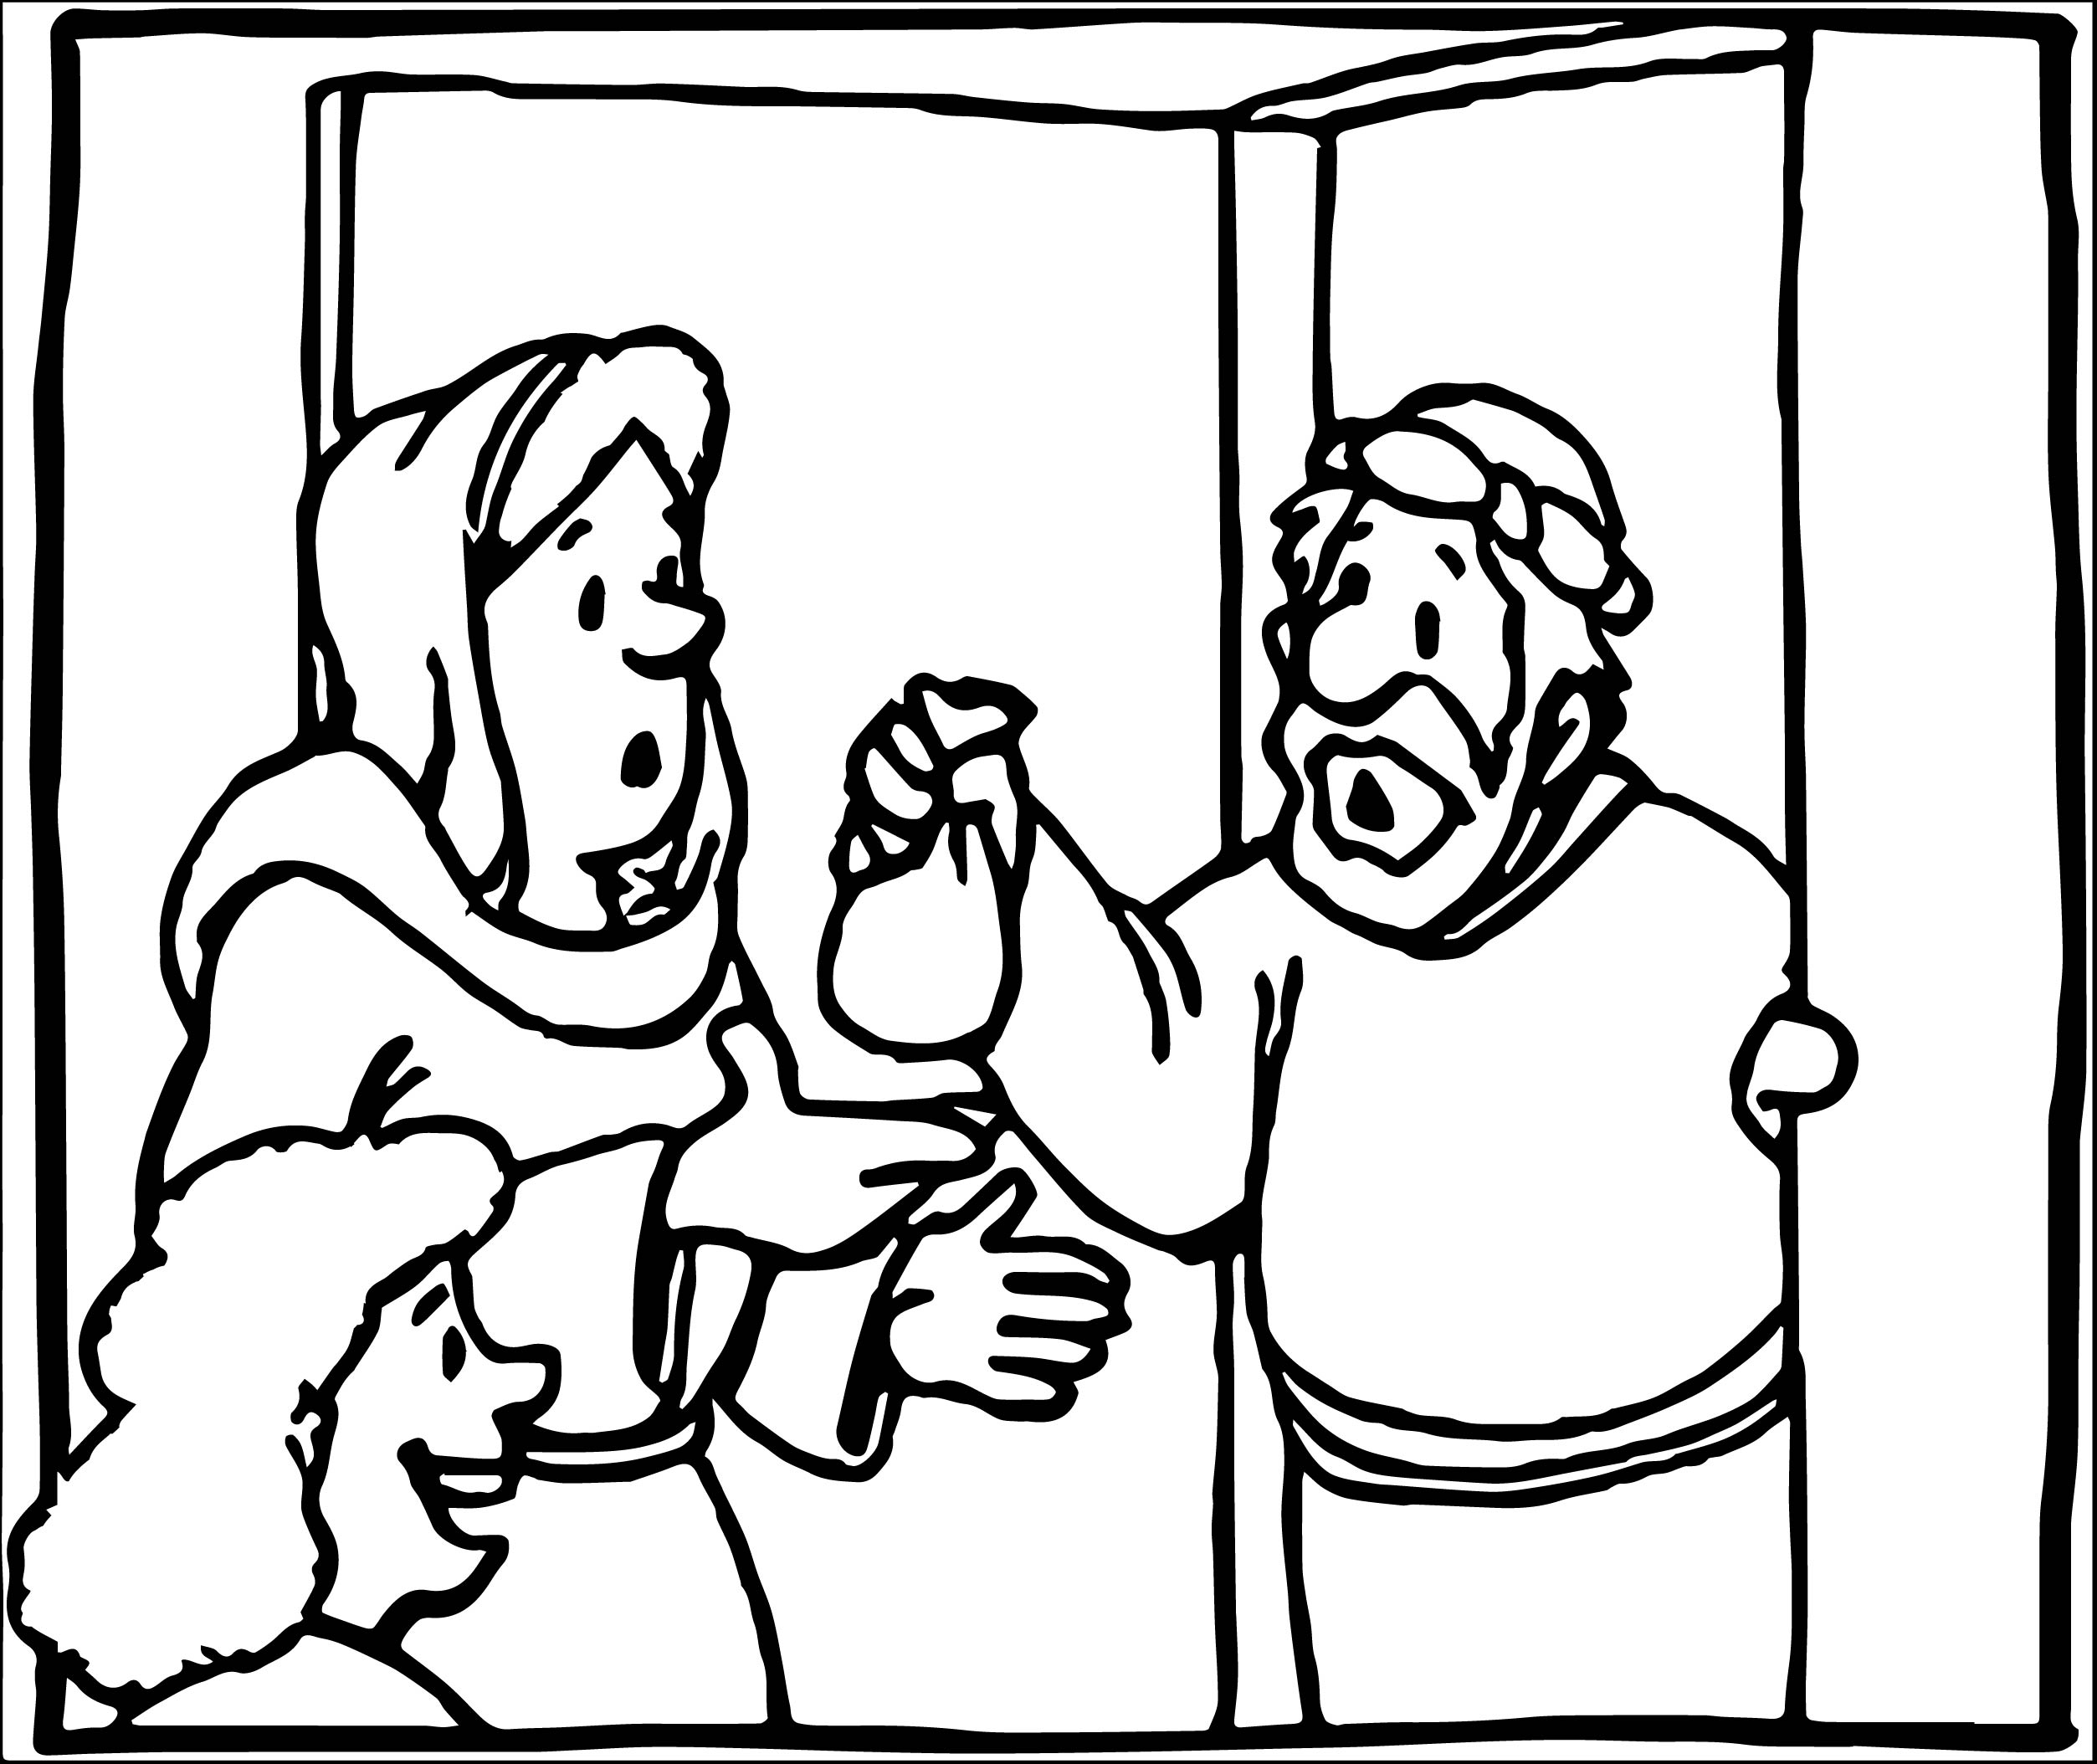 Coloring pages zacchaeus - Zacchaeus Jesus What Coloring Page